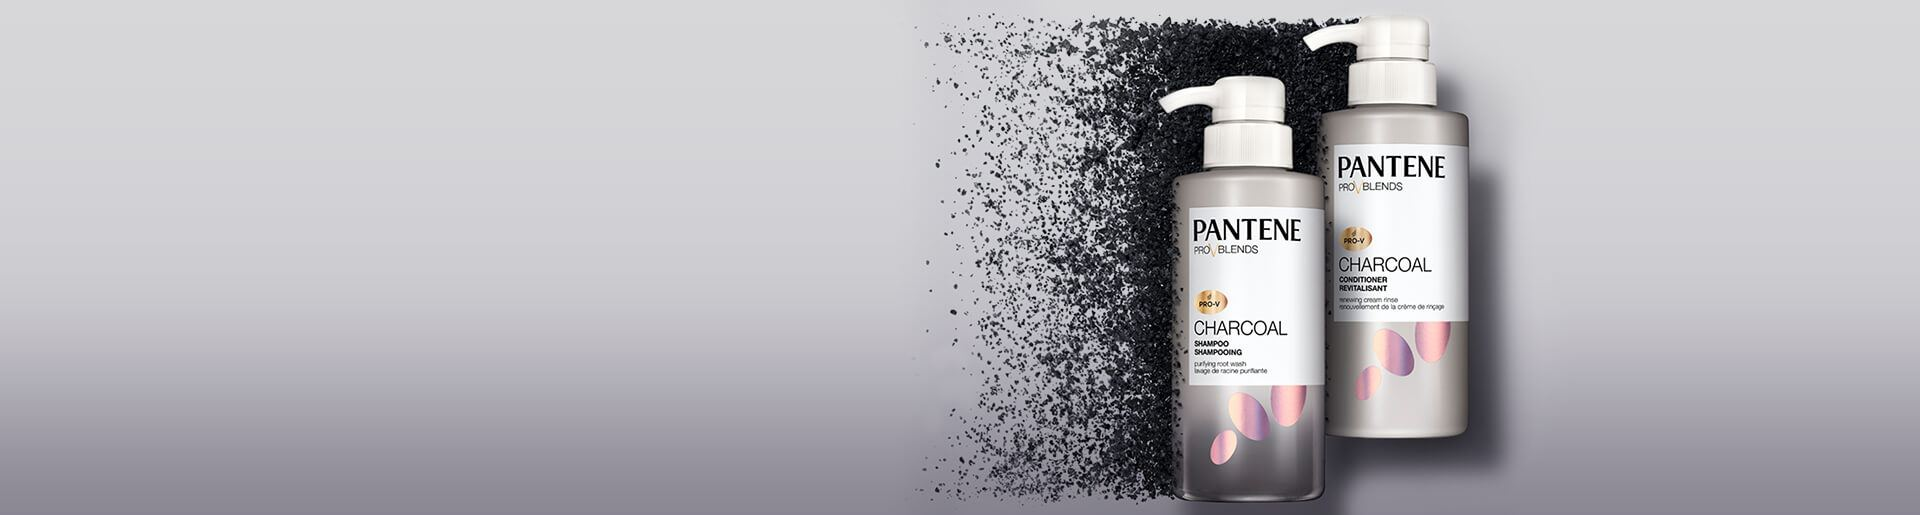 Pantene Charcoal Collection